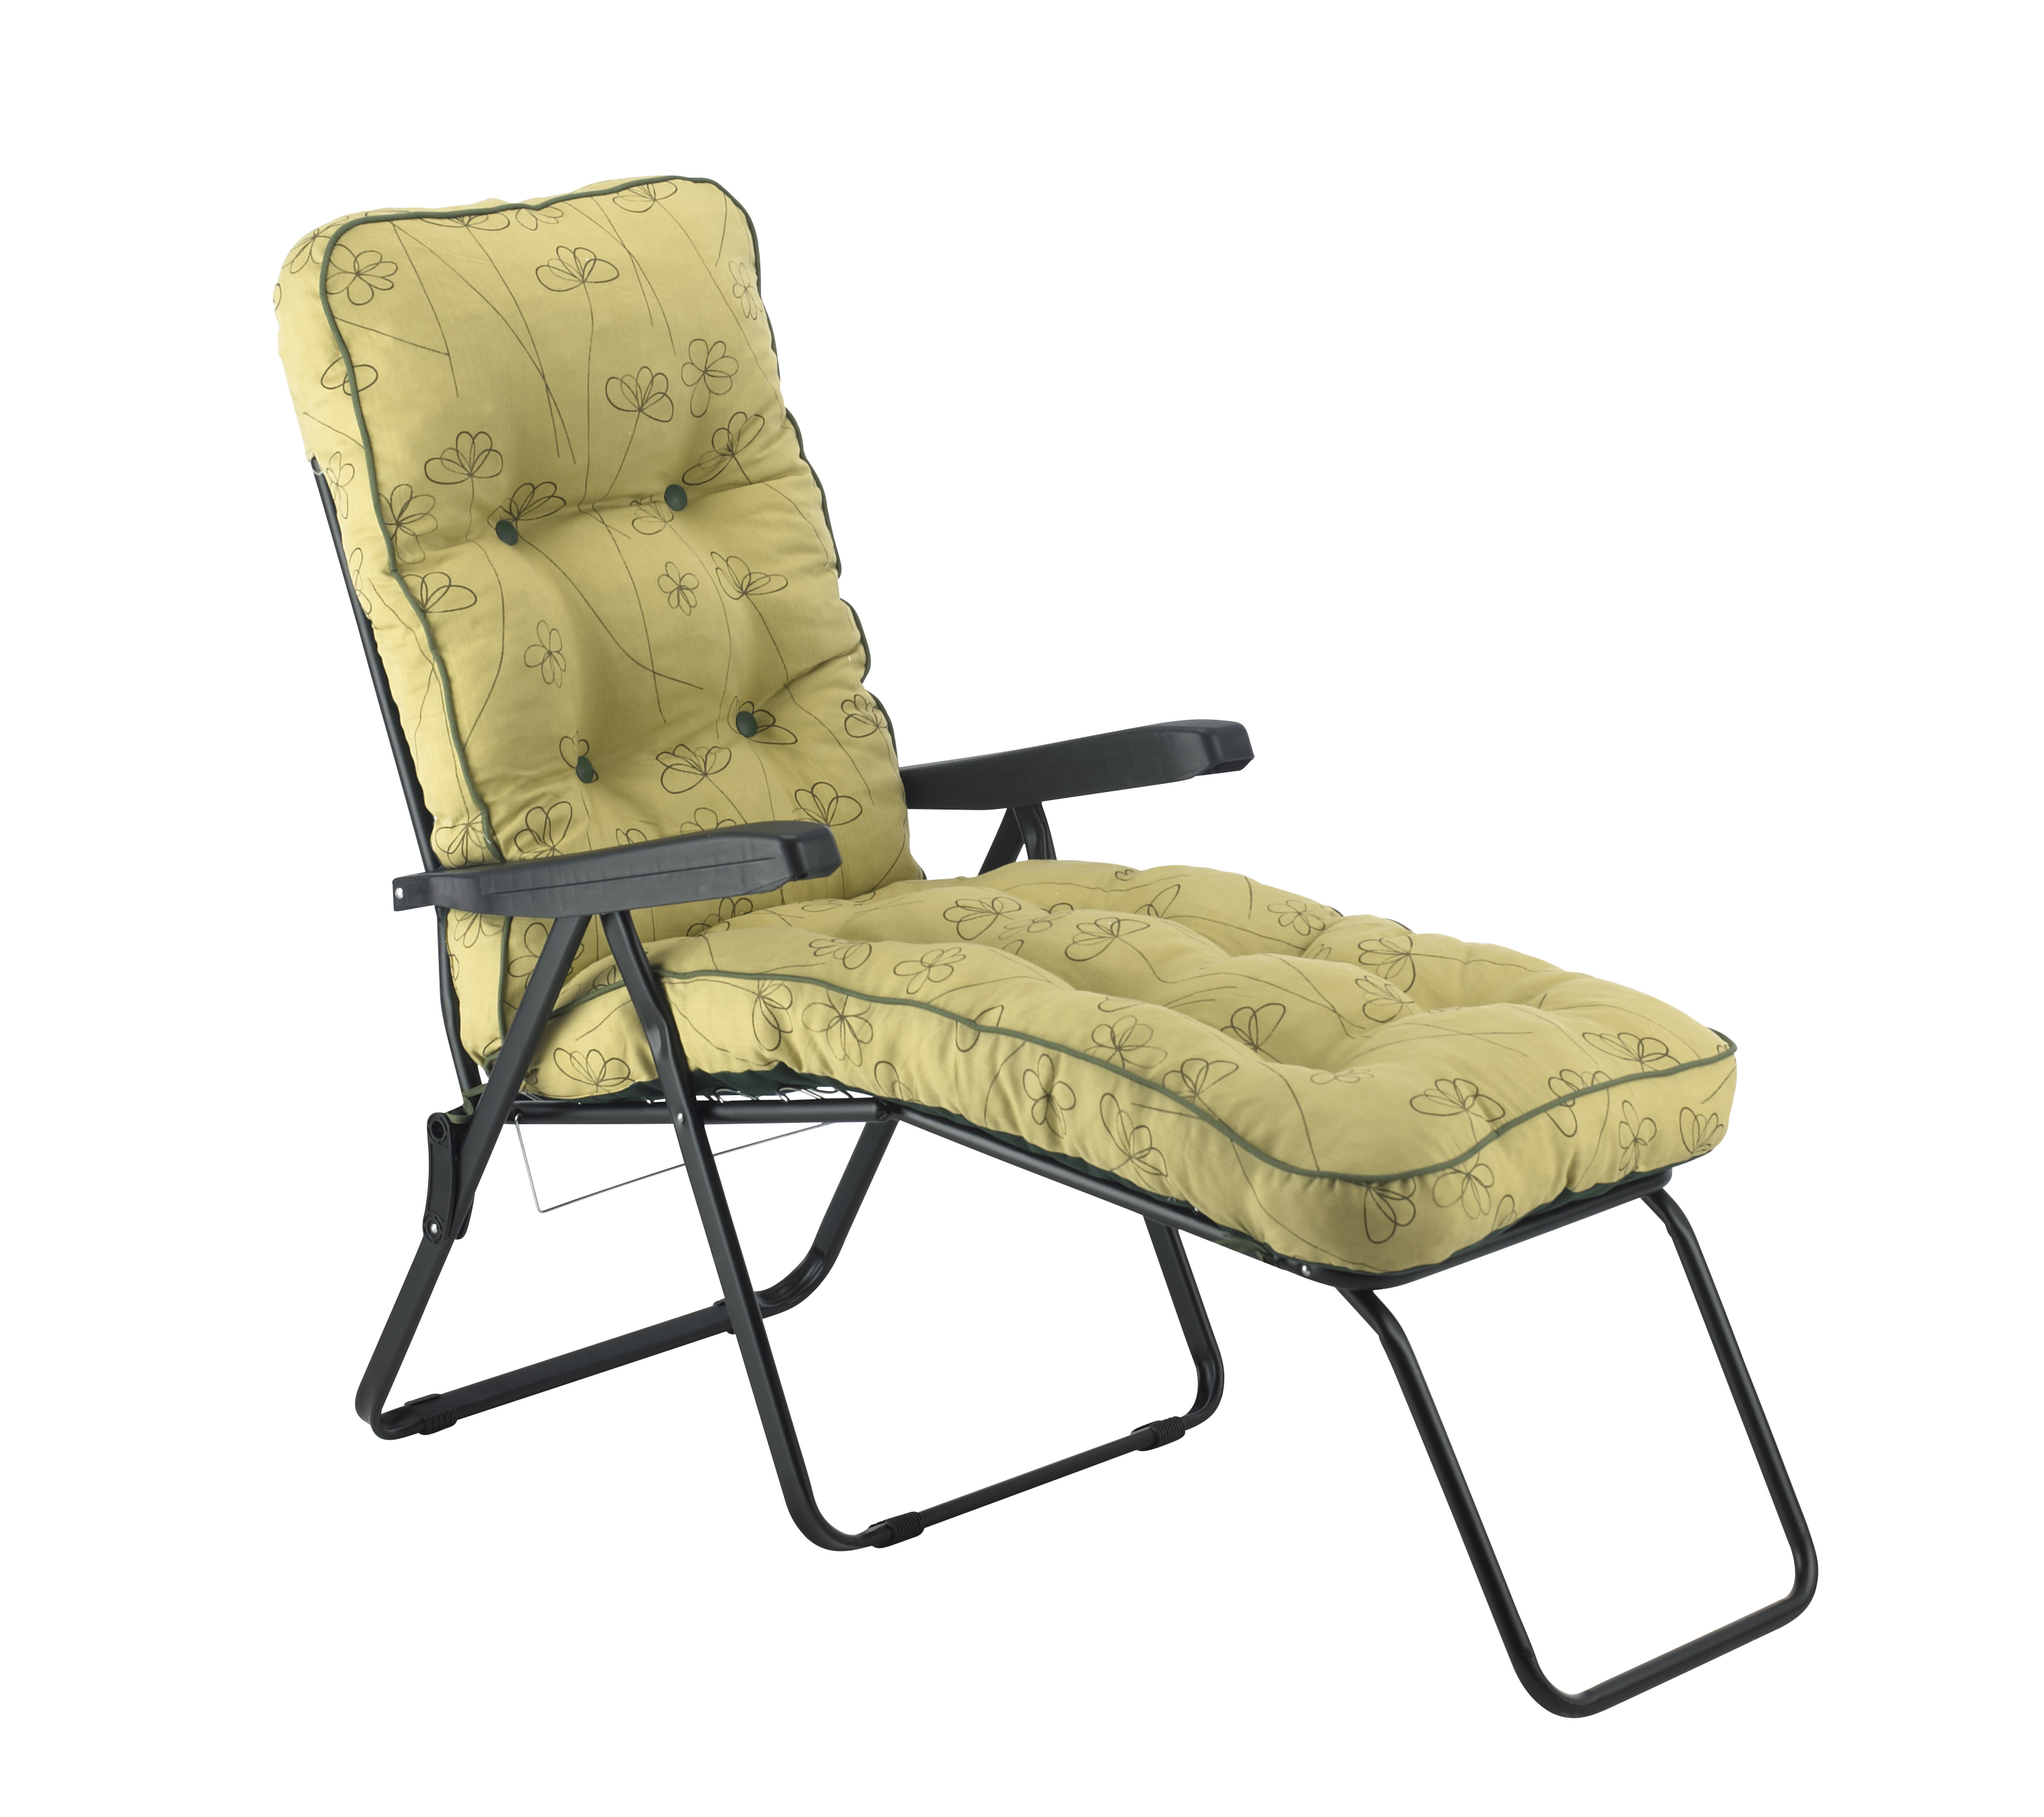 GL1030 NANCY SAGE LOUNGER